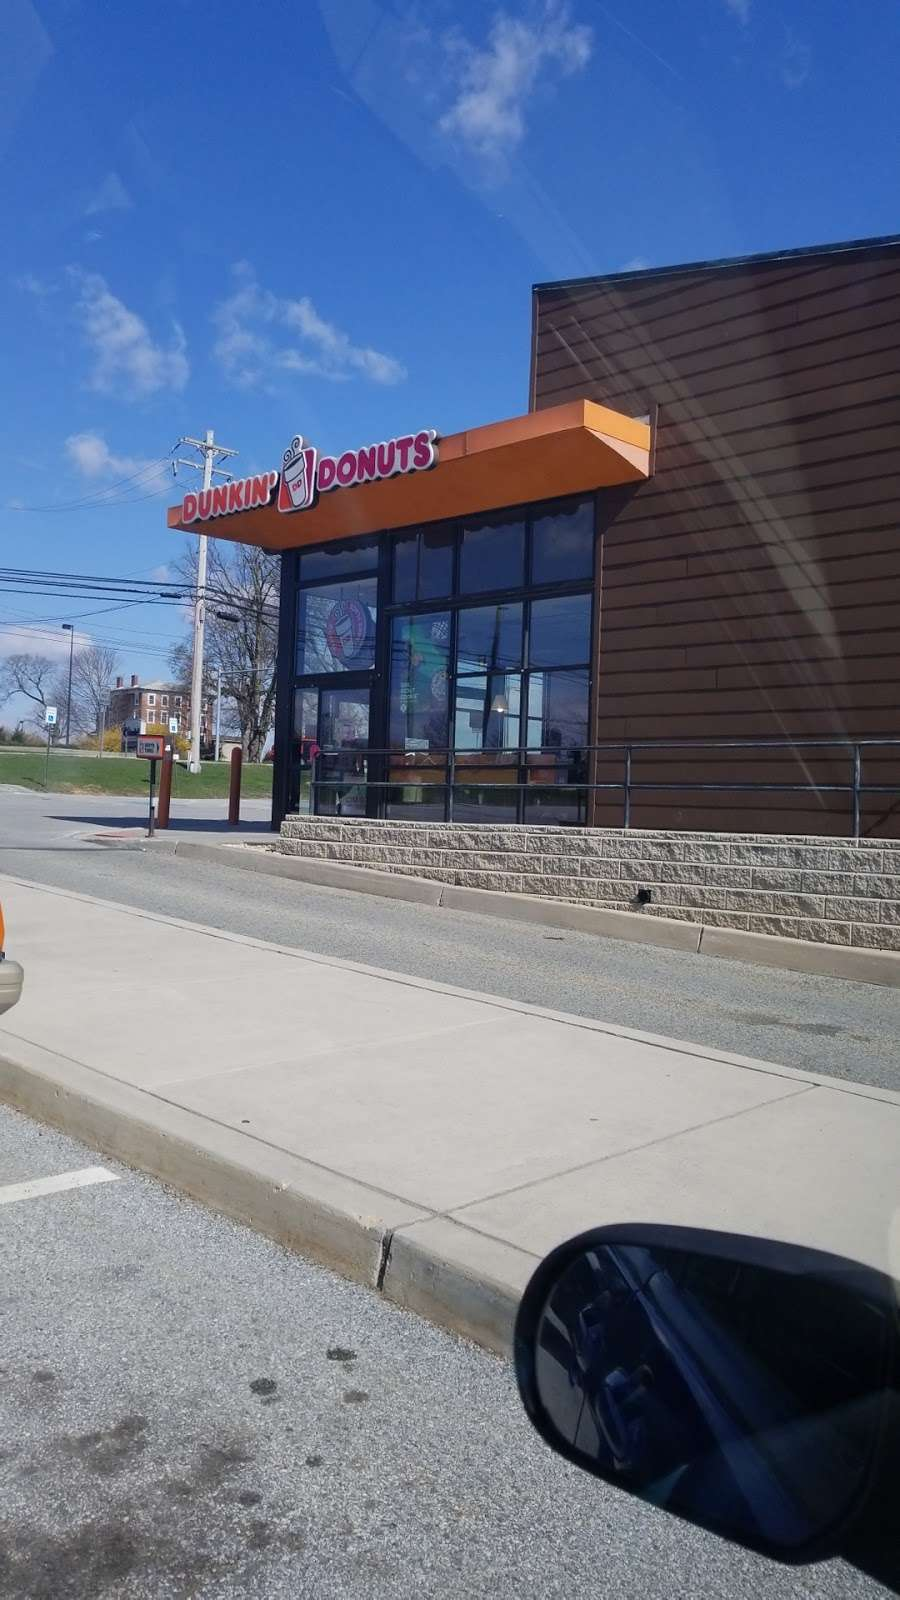 Dunkin Donuts - cafe  | Photo 6 of 10 | Address: 321 N 3rd St, Oxford, PA 19363, USA | Phone: (610) 932-1992